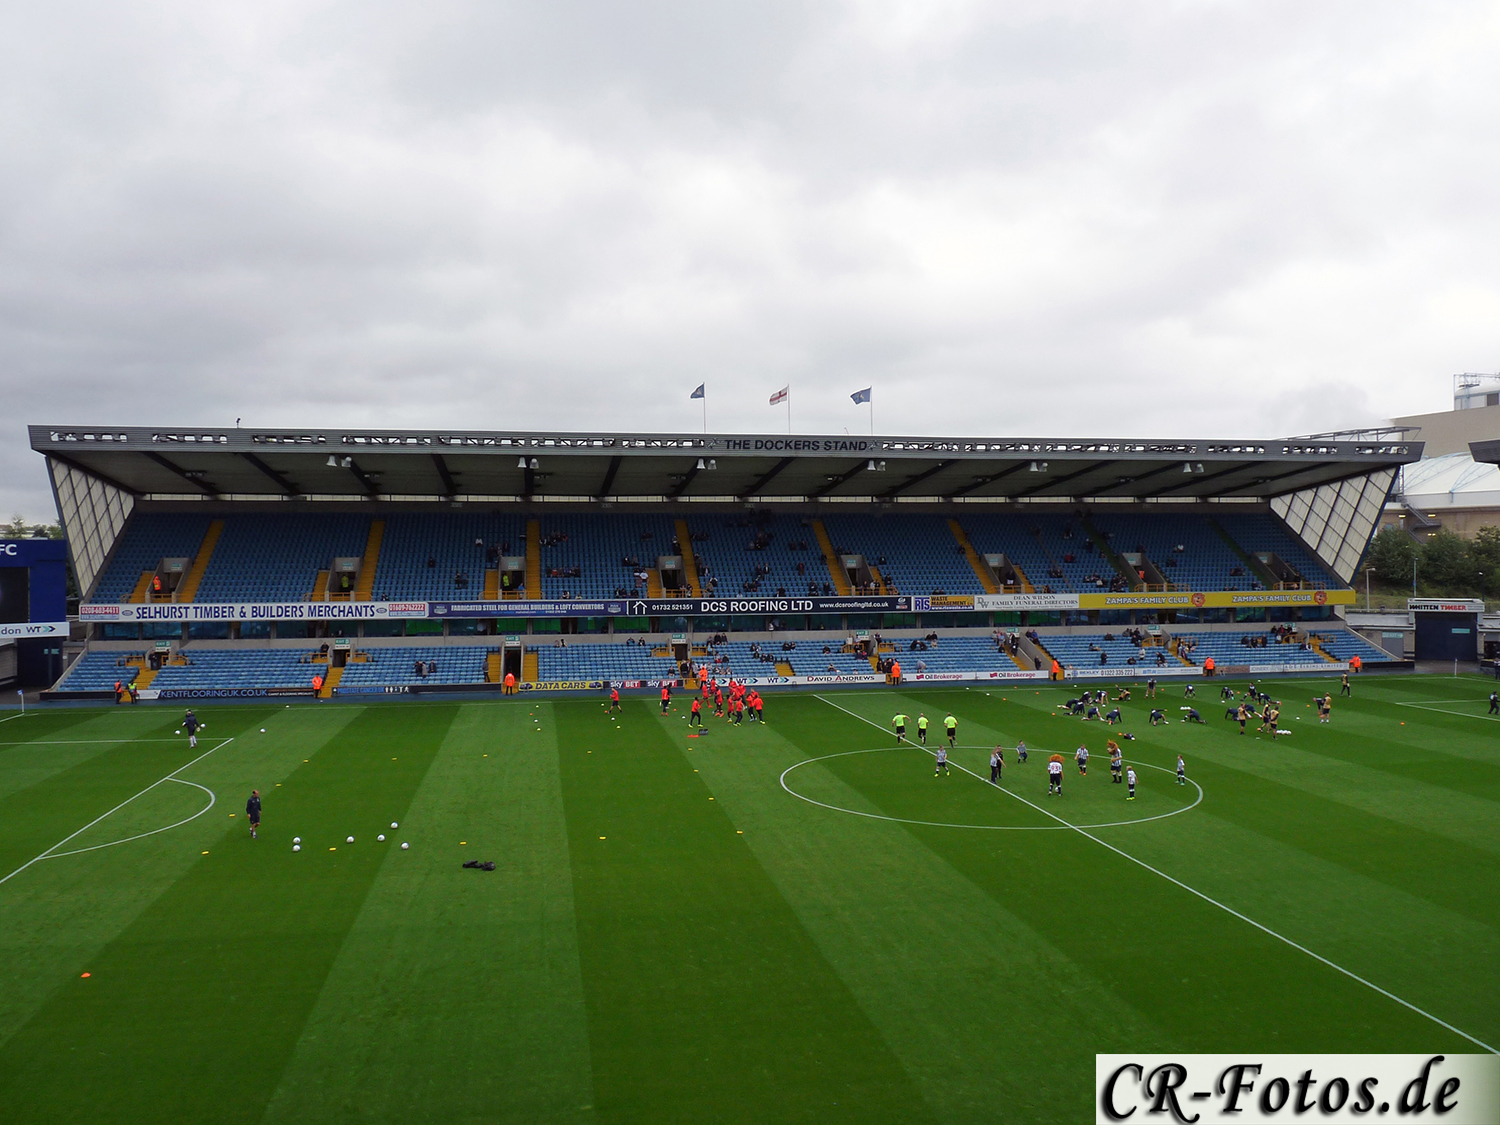 Ricoh Arena - Coventry - The Stadium Guide Coventry city fc photos